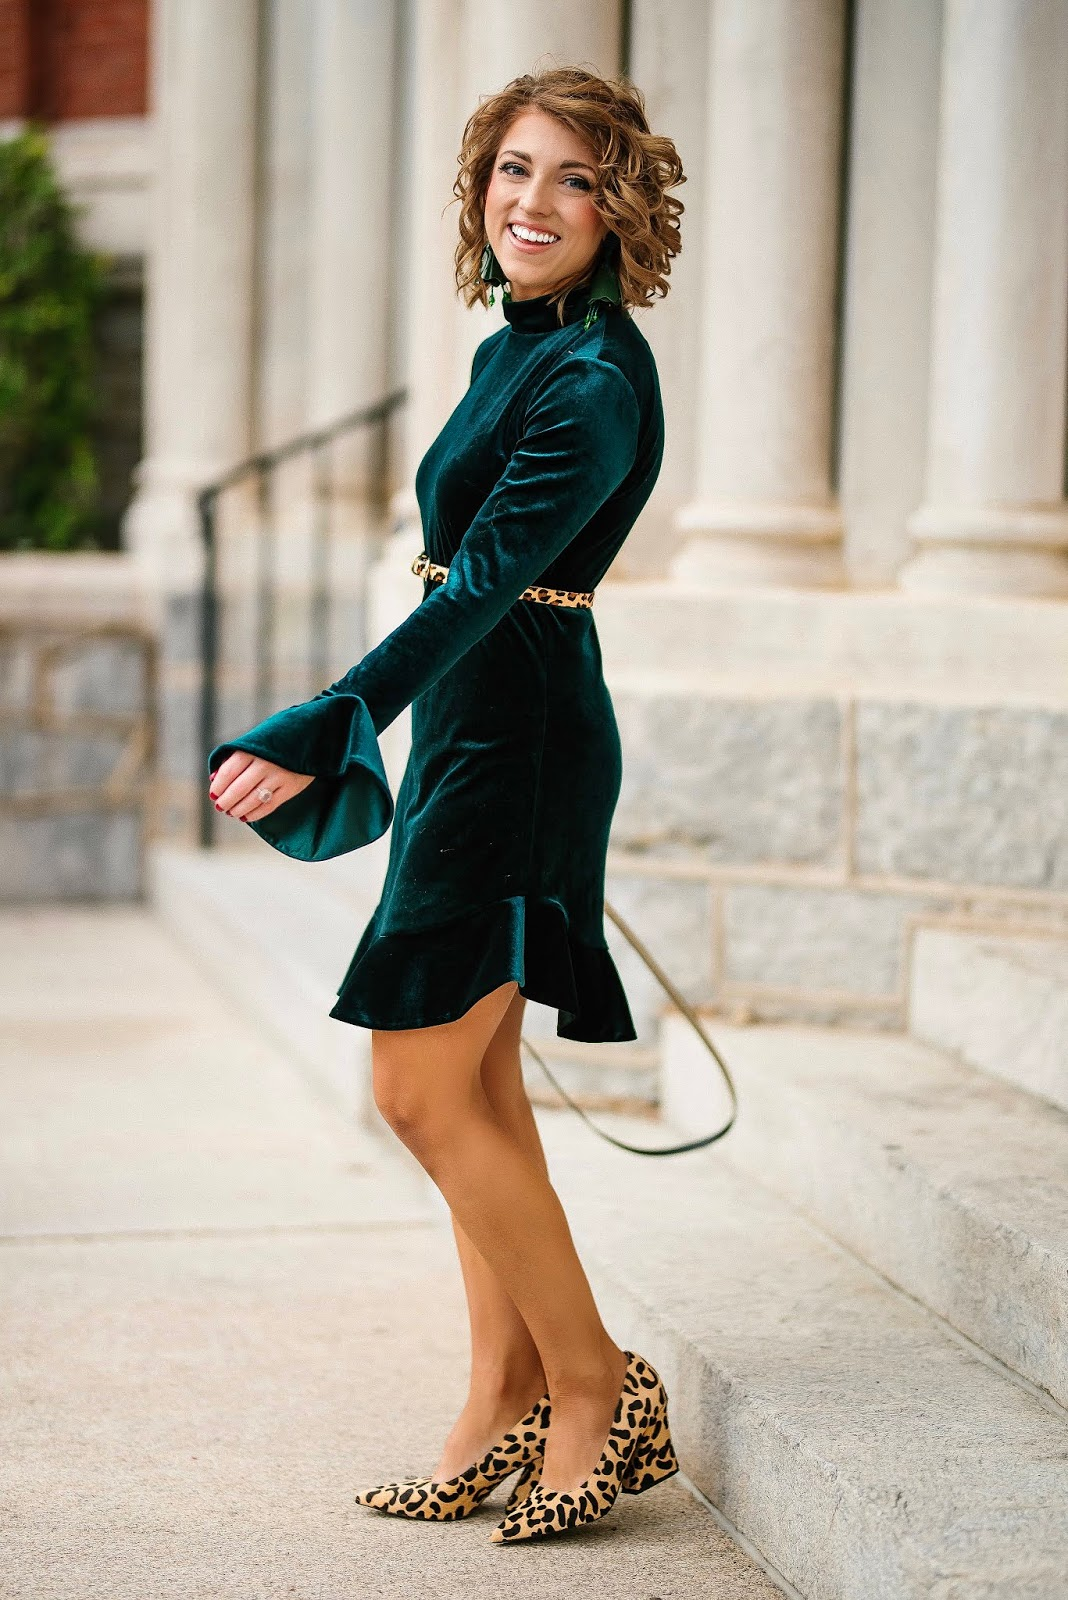 Green Velvet Ruffle Sleeve Dress, Leopard Belt and ZAC Zac Posen Glitter Bag - Something Delightful Blog